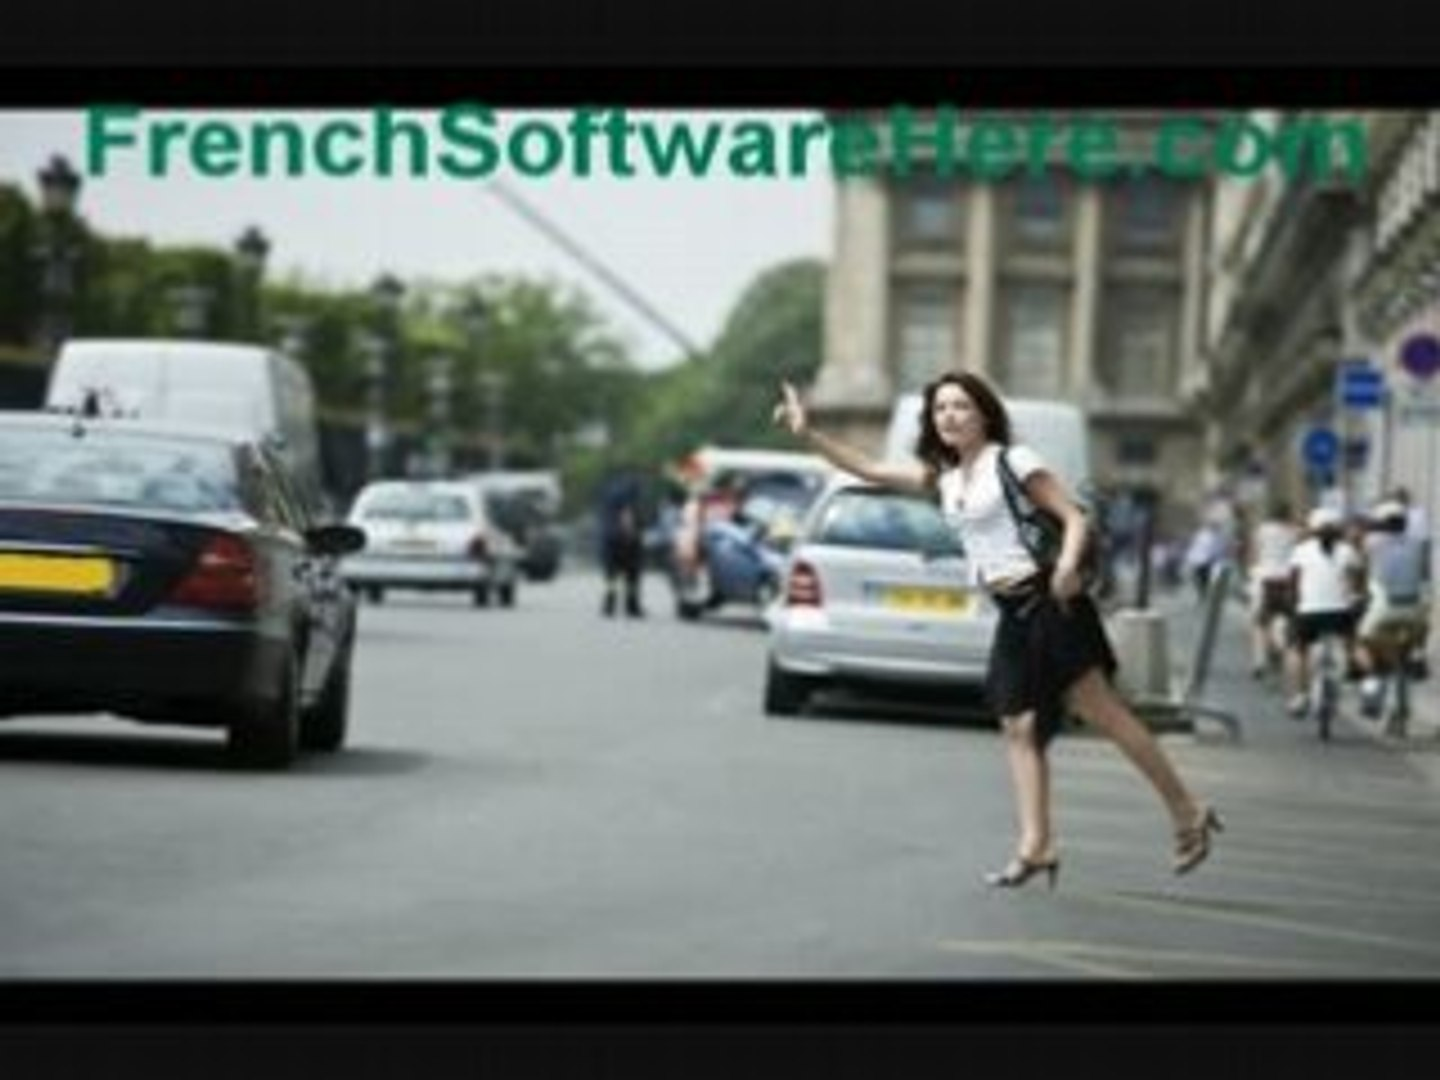 French Software